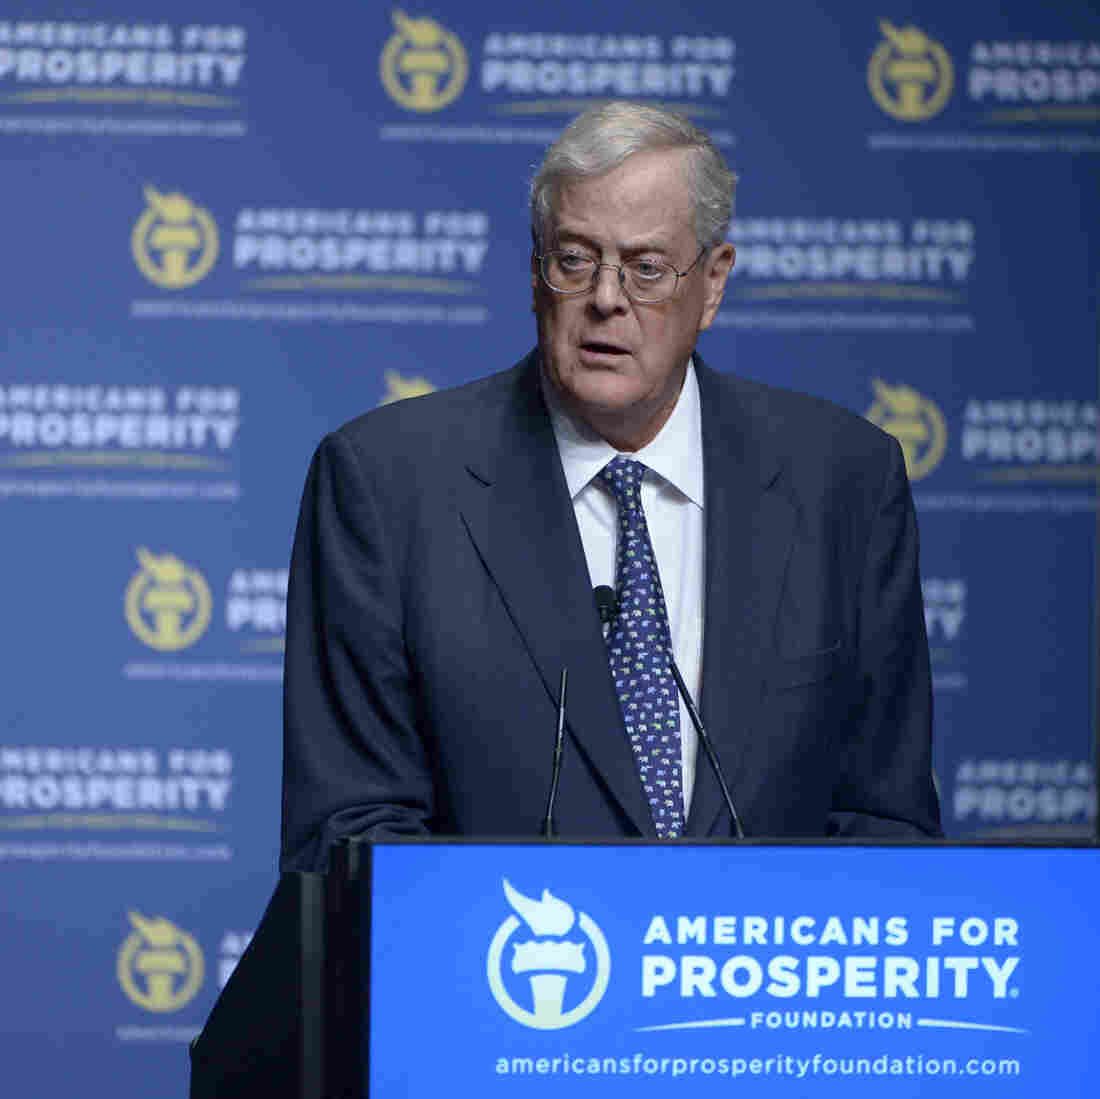 Americans for Prosperity Foundation Chairman David Koch addresses attendees of the Defending the American Dream Summit in Orlando, Fla., Friday, Aug. 30, 2013.